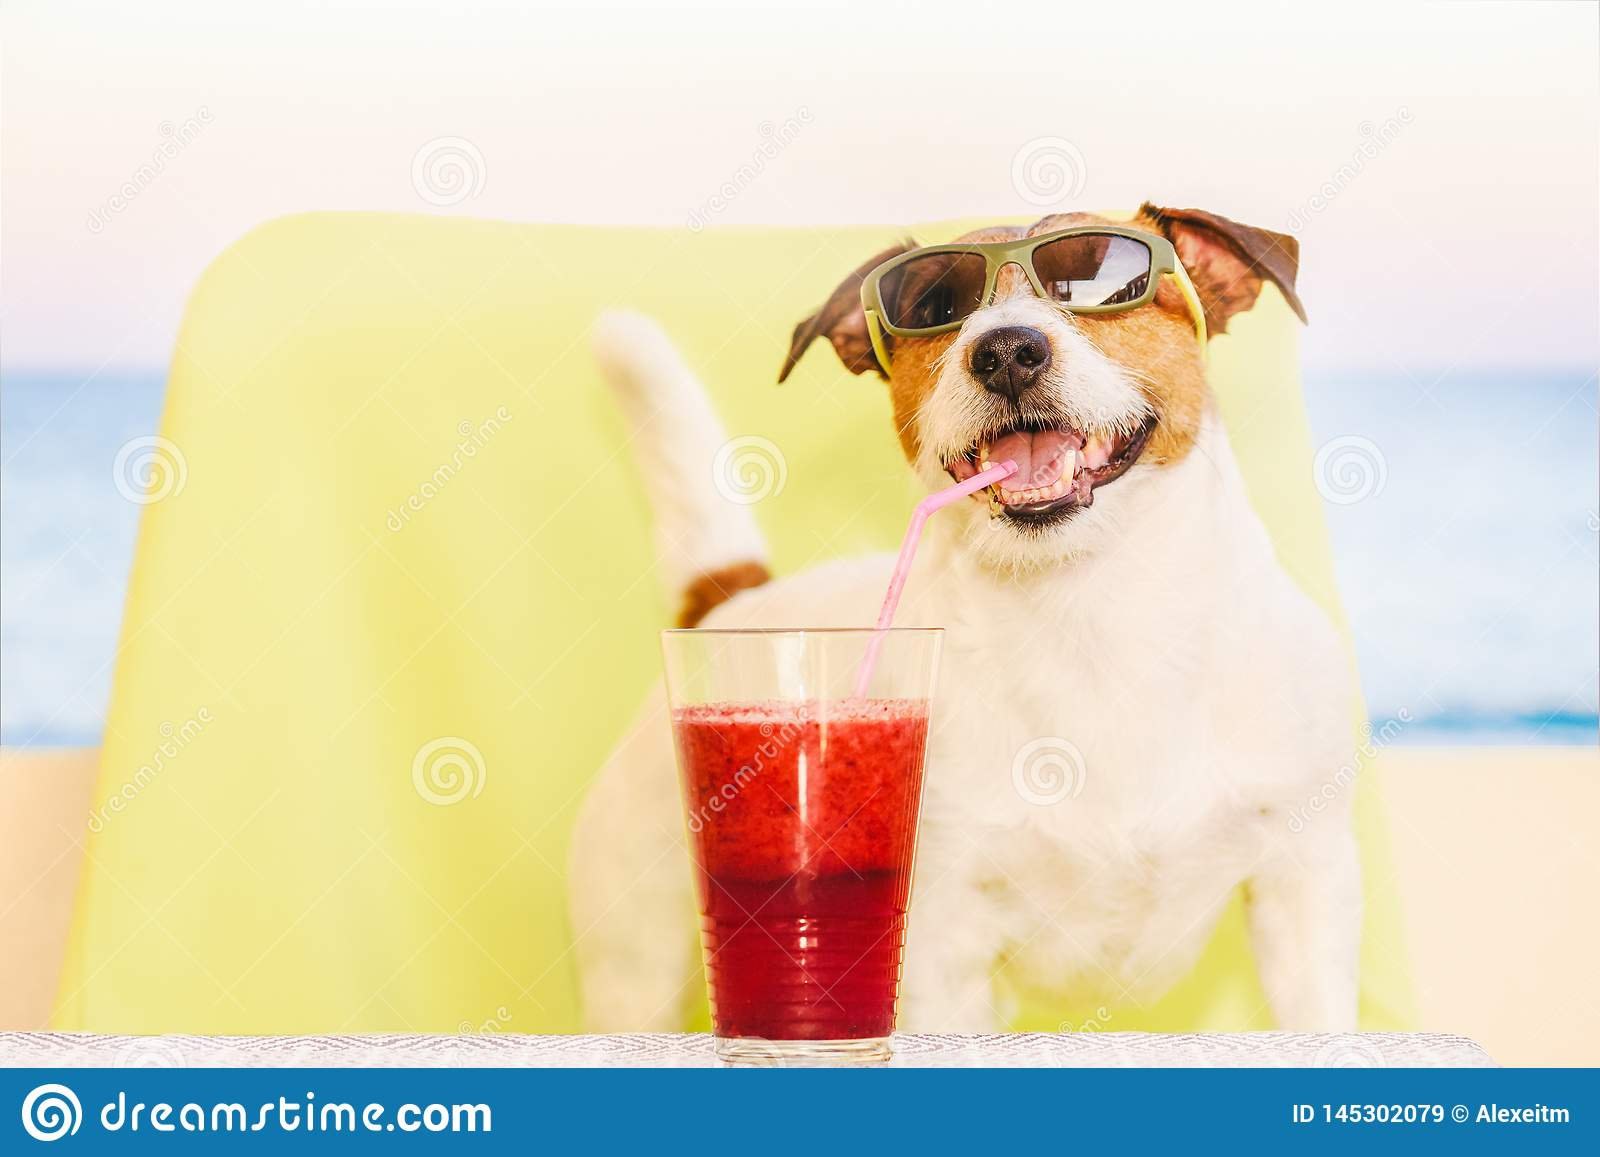 Happy dog wearing sunglasses drinking fruit smoothie through cocktail straw